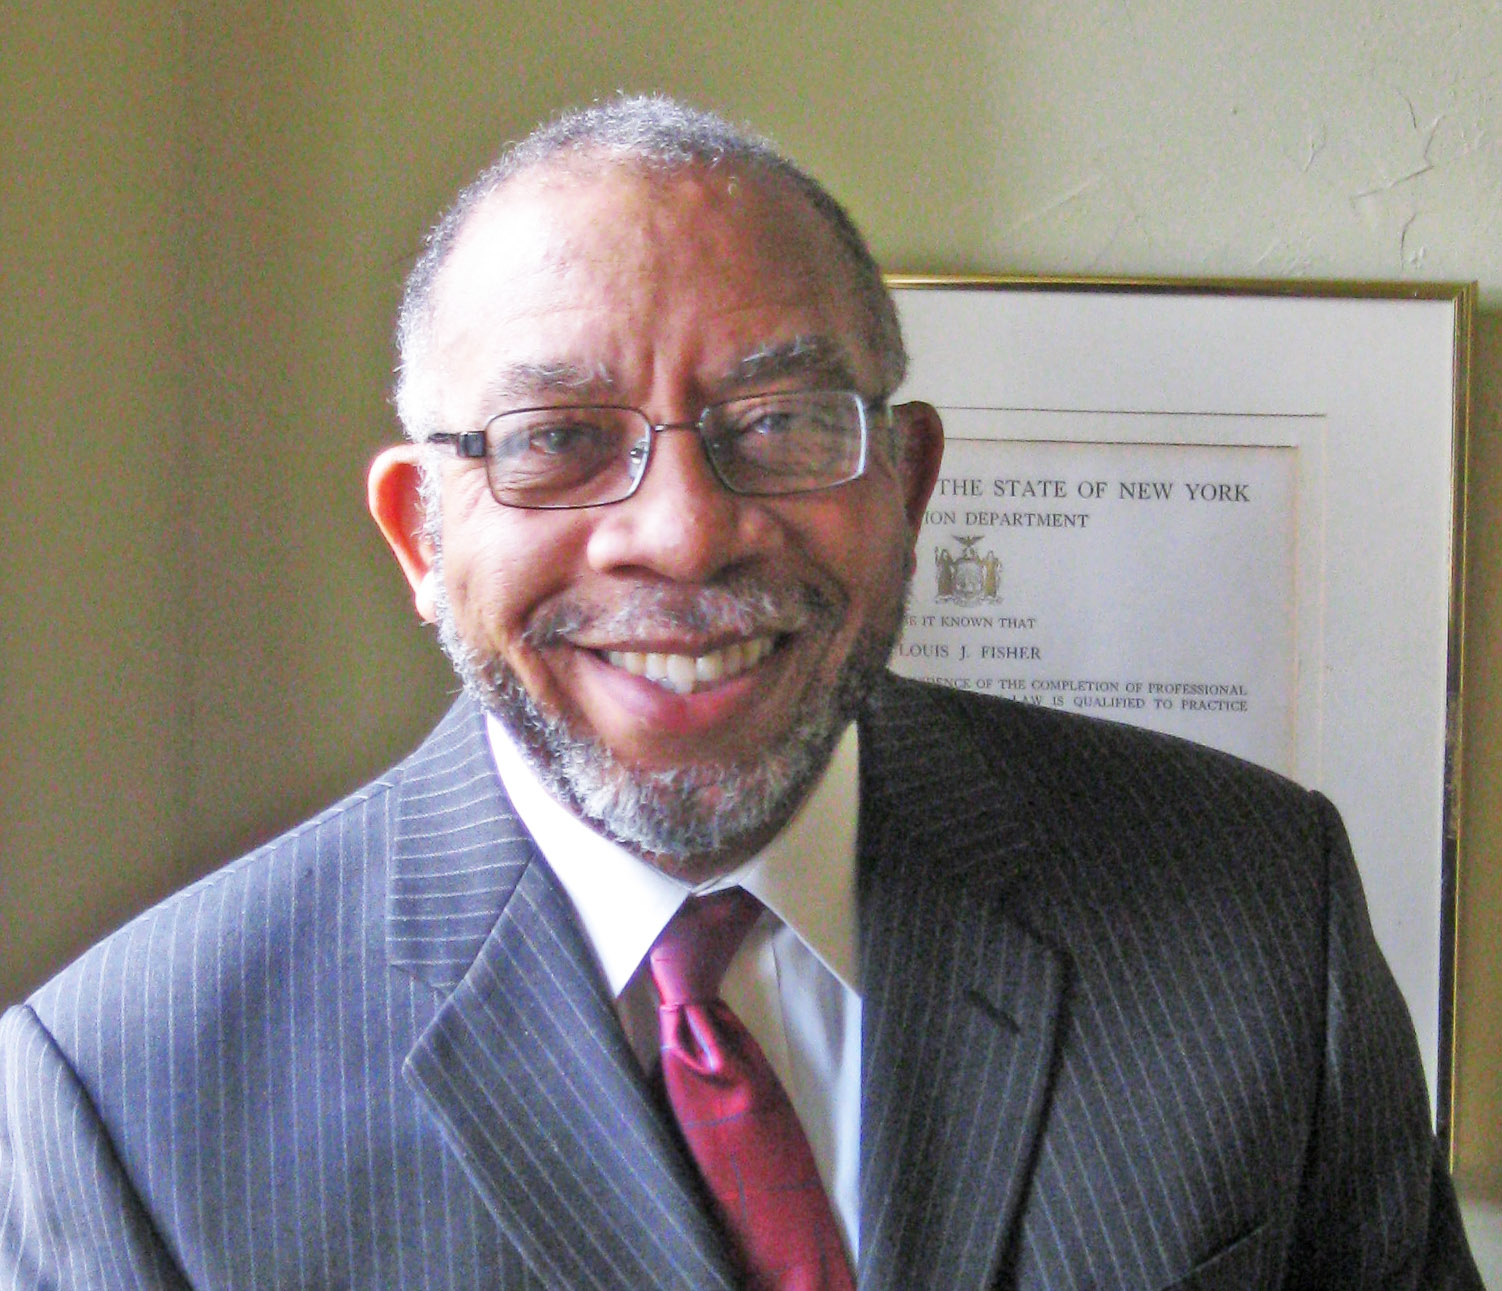 Louis J. Fisher, AIA - NOMA-Detroit Board Member At Large 2016